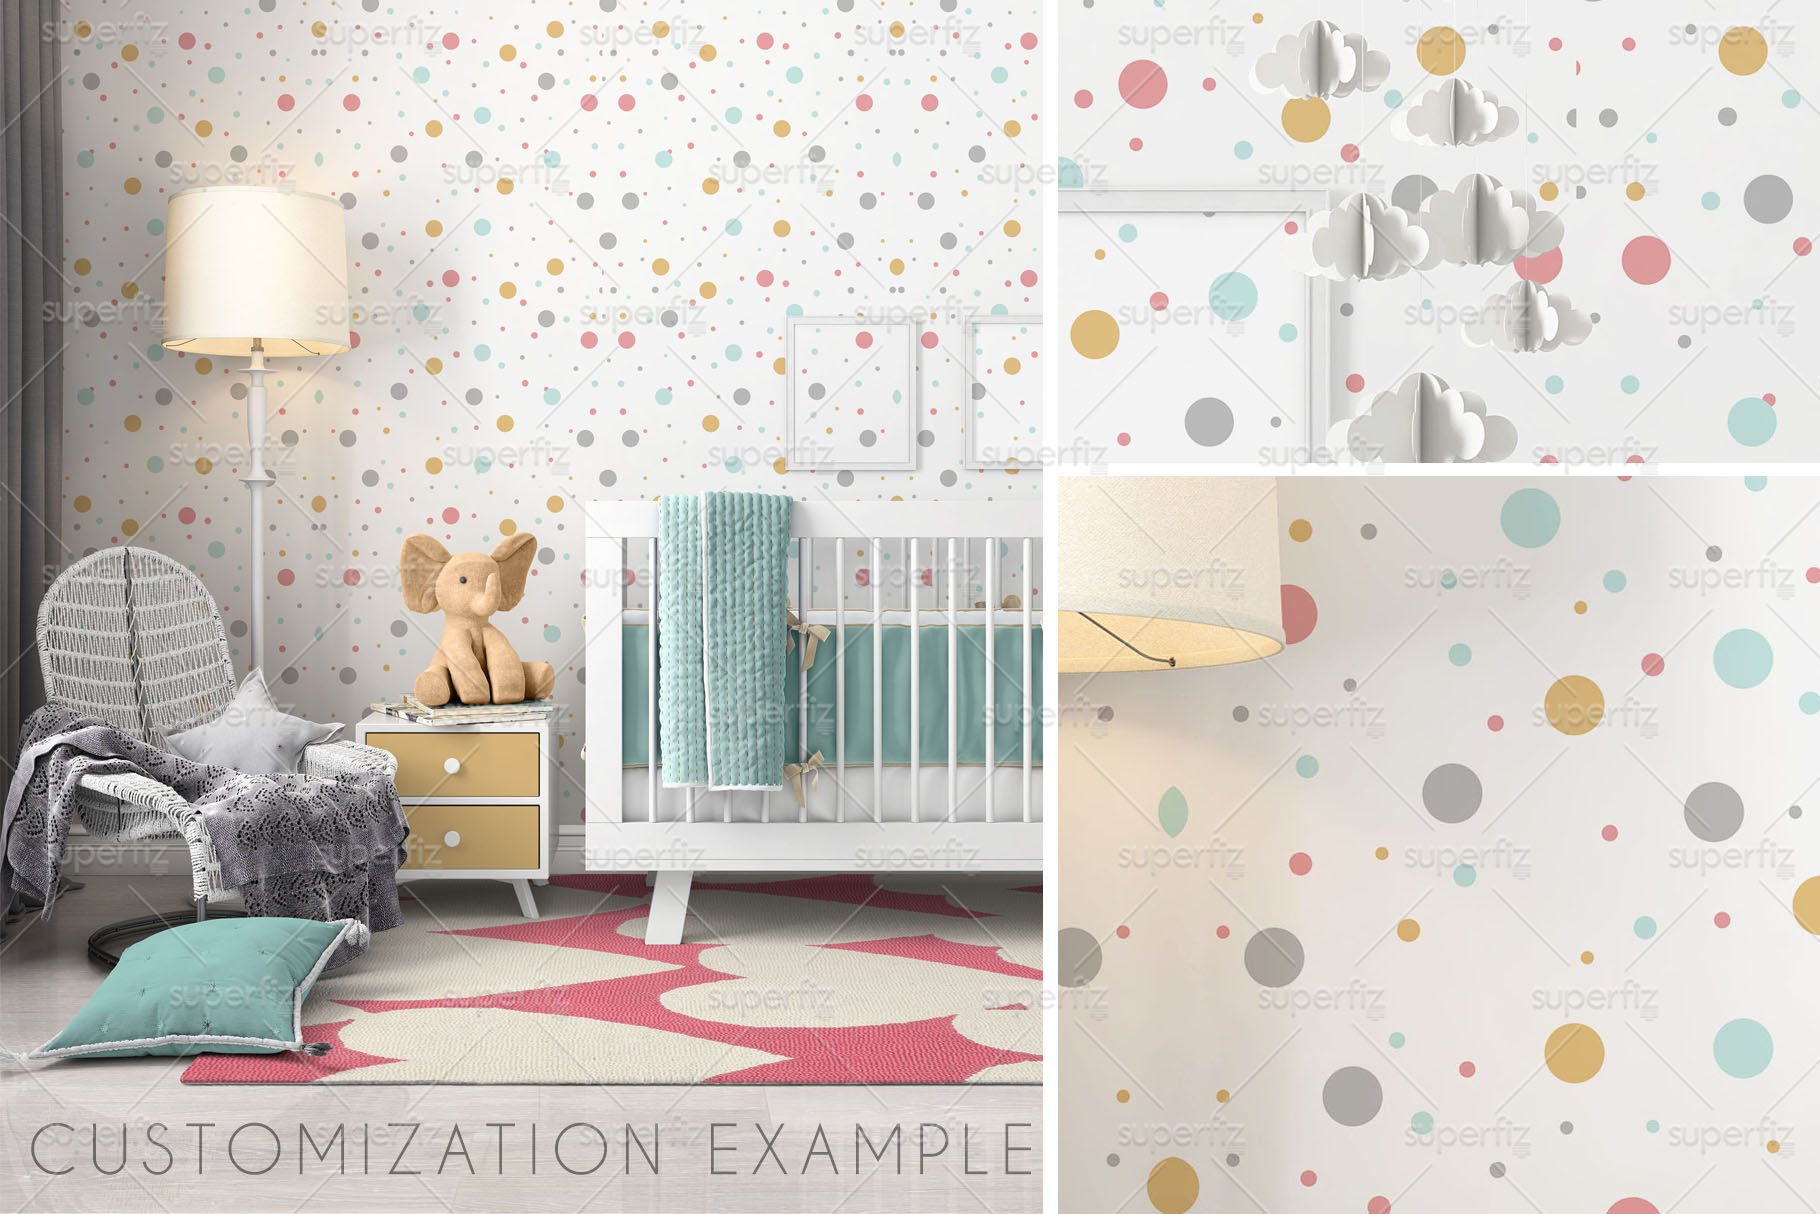 Wallpaper, floor, carpet and frame Mockup Baby Bedroom SM60 example image 7